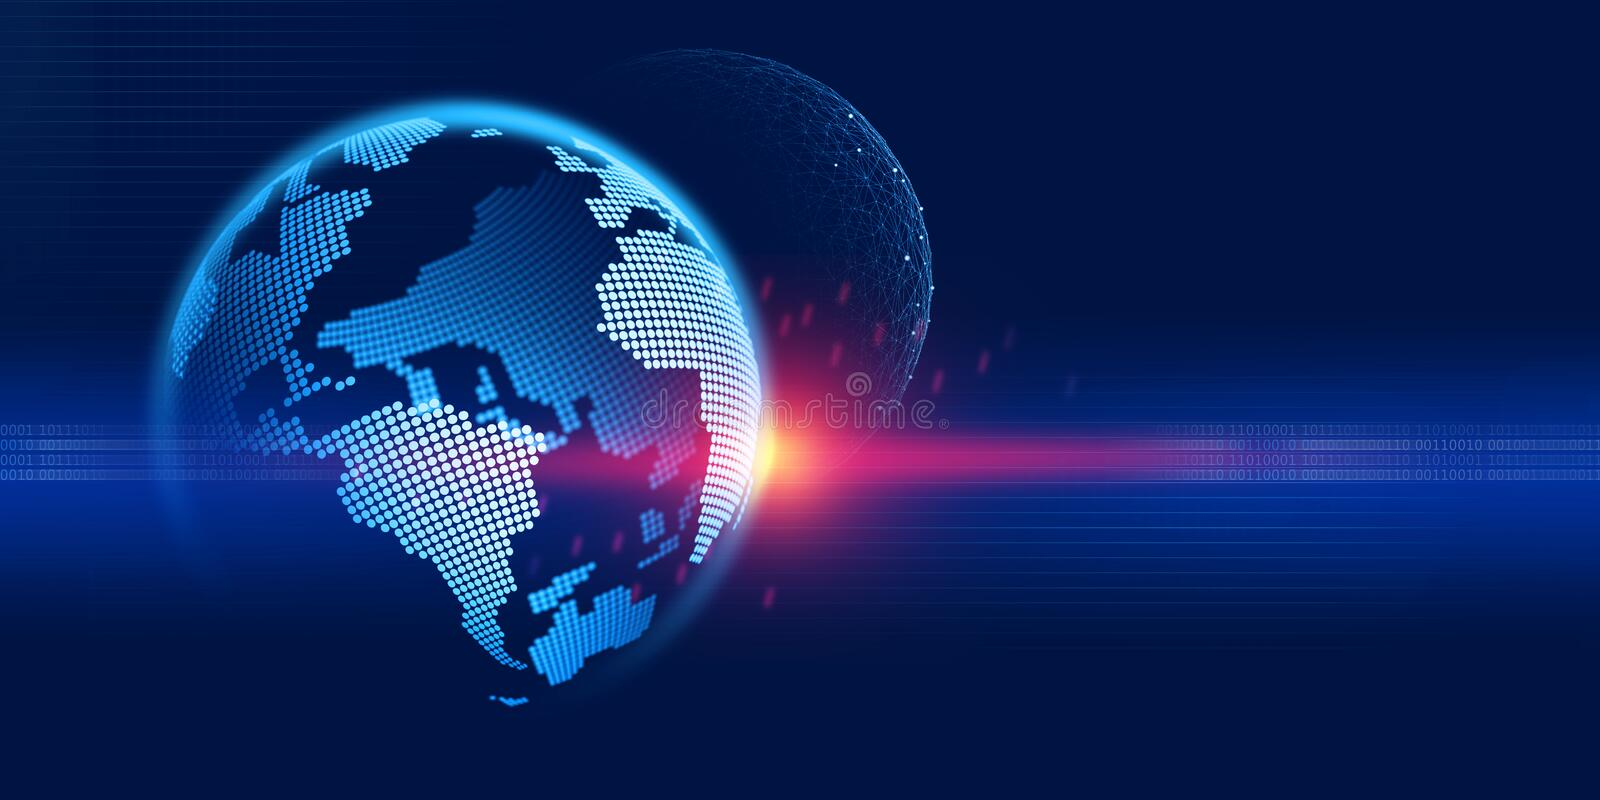 Digital world. Information technology of the future. Research in the field of nanotechnology. 3d illustration on a dark blue background royalty free illustration